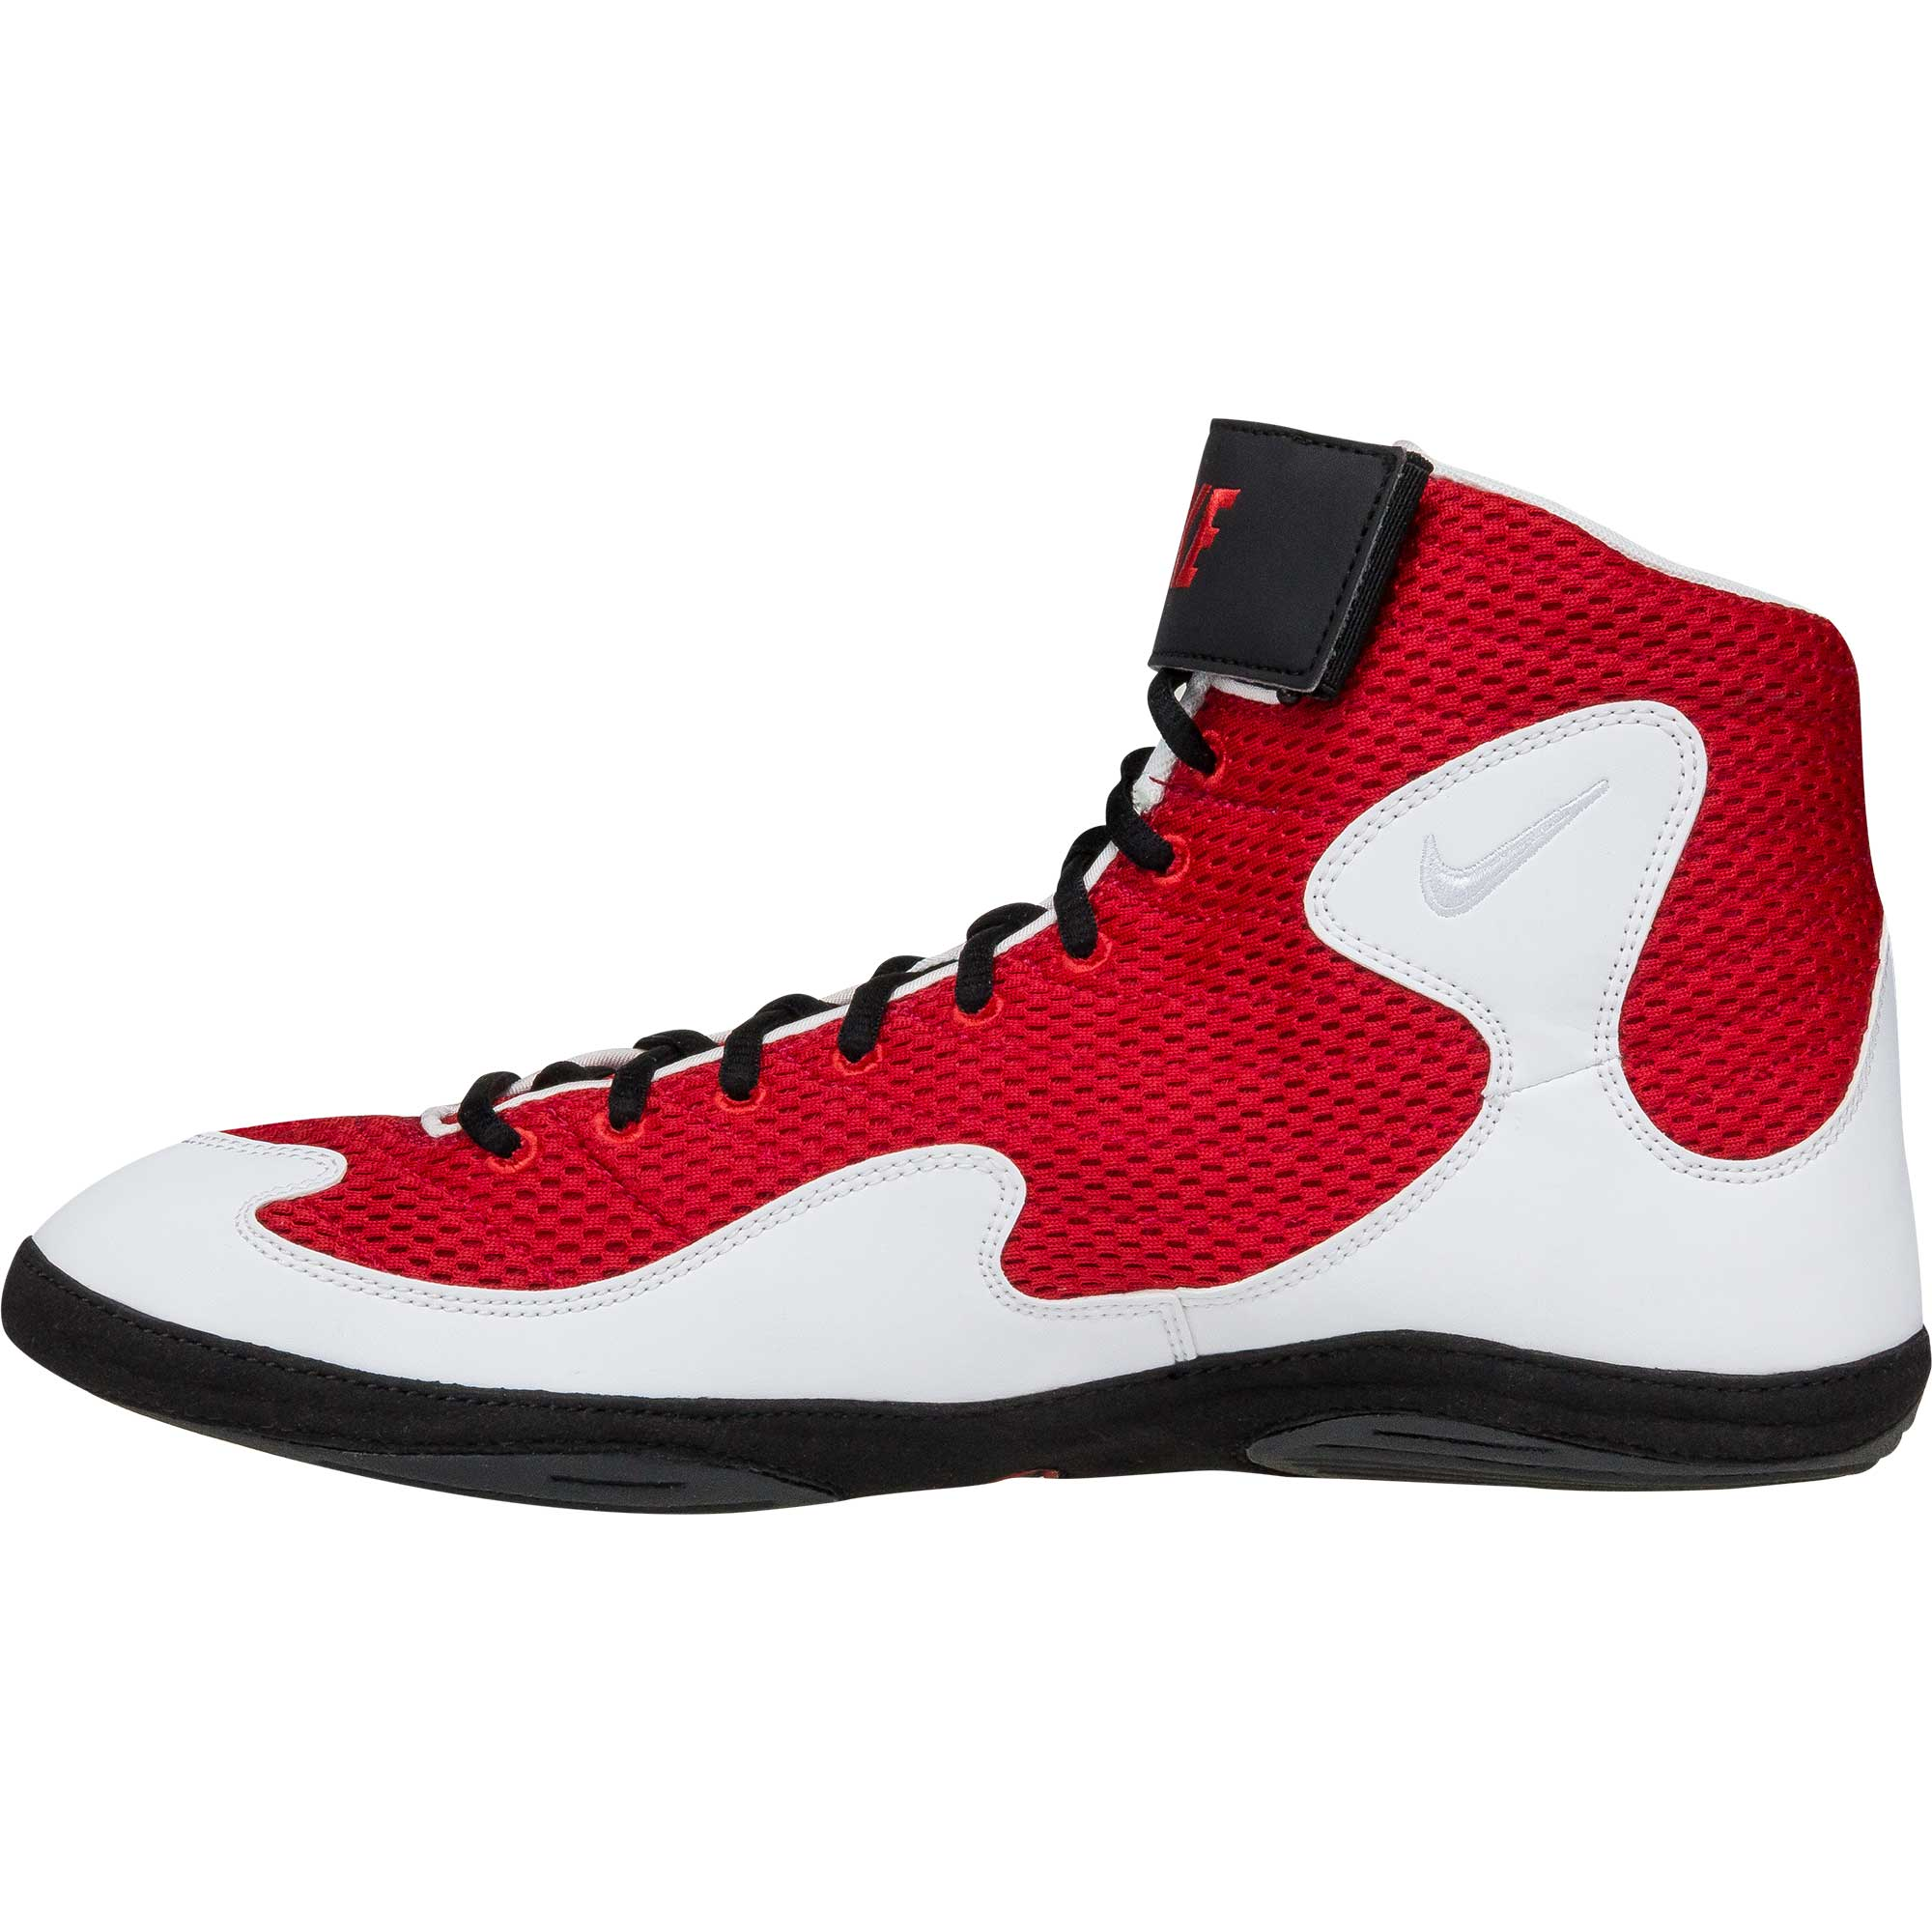 quality design dccf0 6737a nike inflict cheap nike inflict black and red